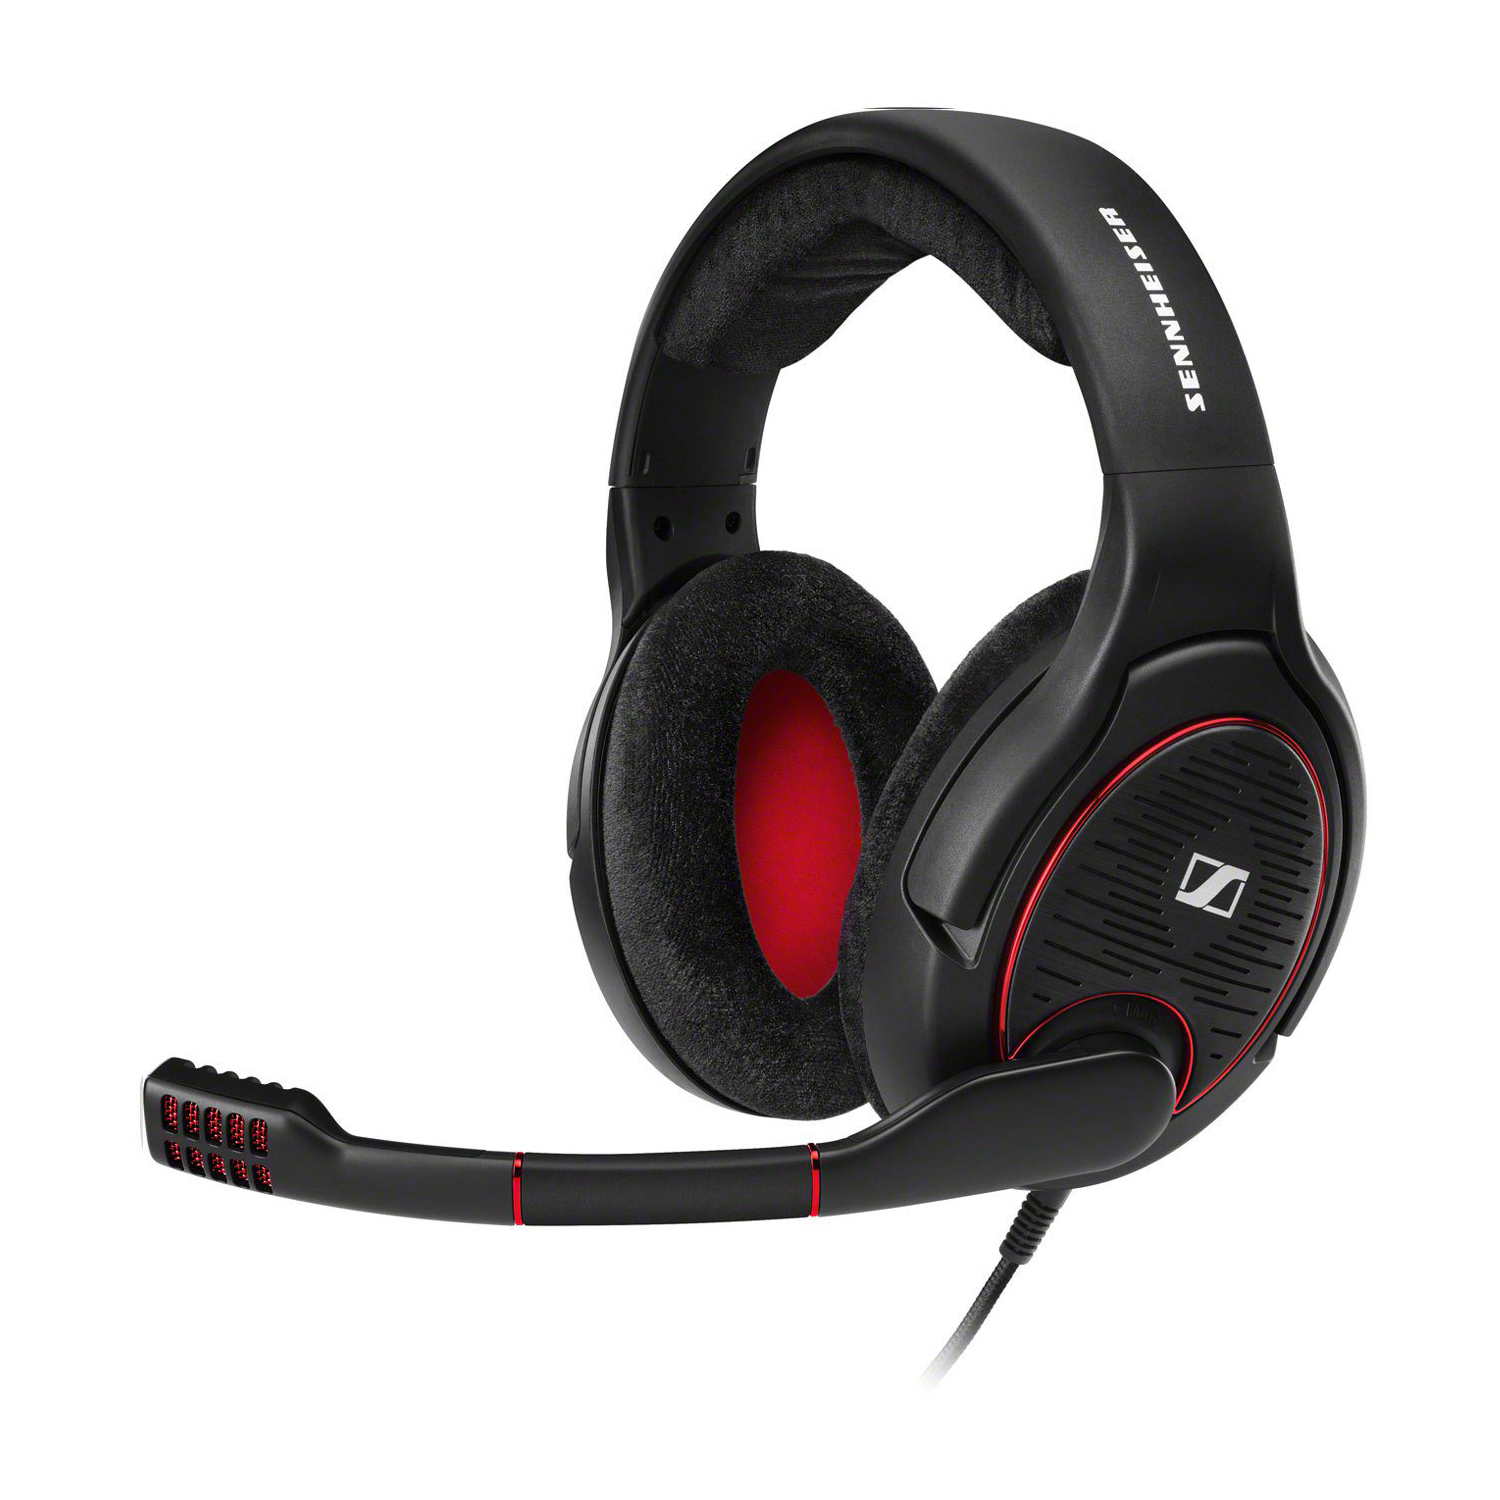 Sennheiser GAME ONE Gaming Headset, Black, 00615104257443